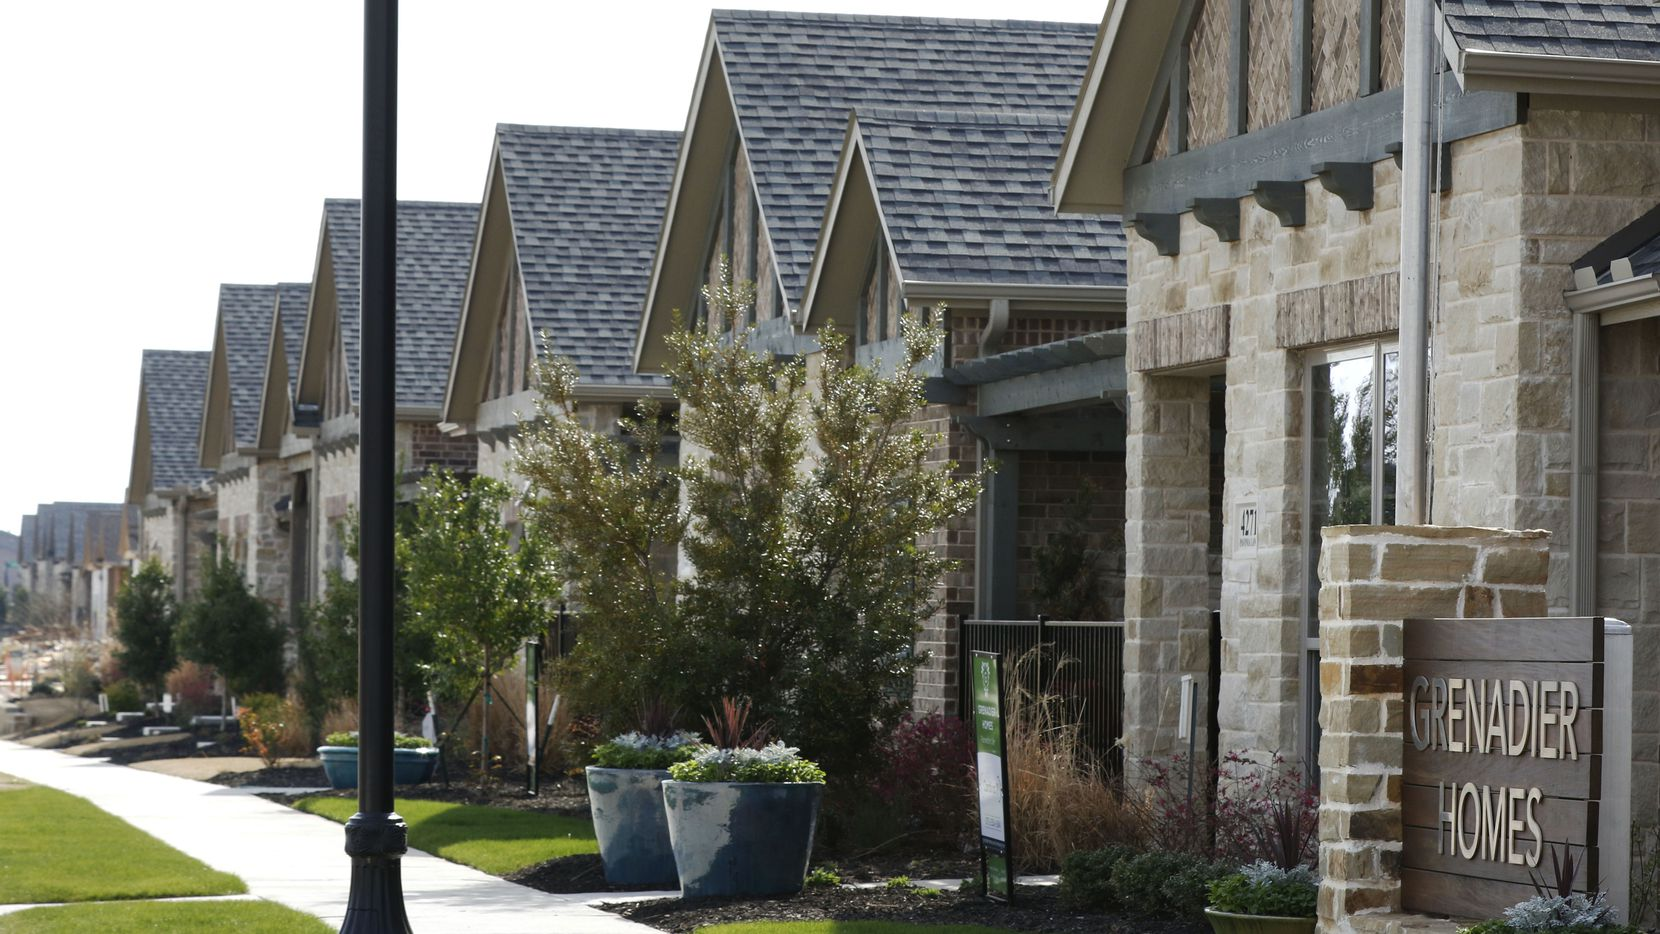 Grenadier Homes' Villas houses in the Windsong Ranch development in Prosper have been a hit with older buyers.